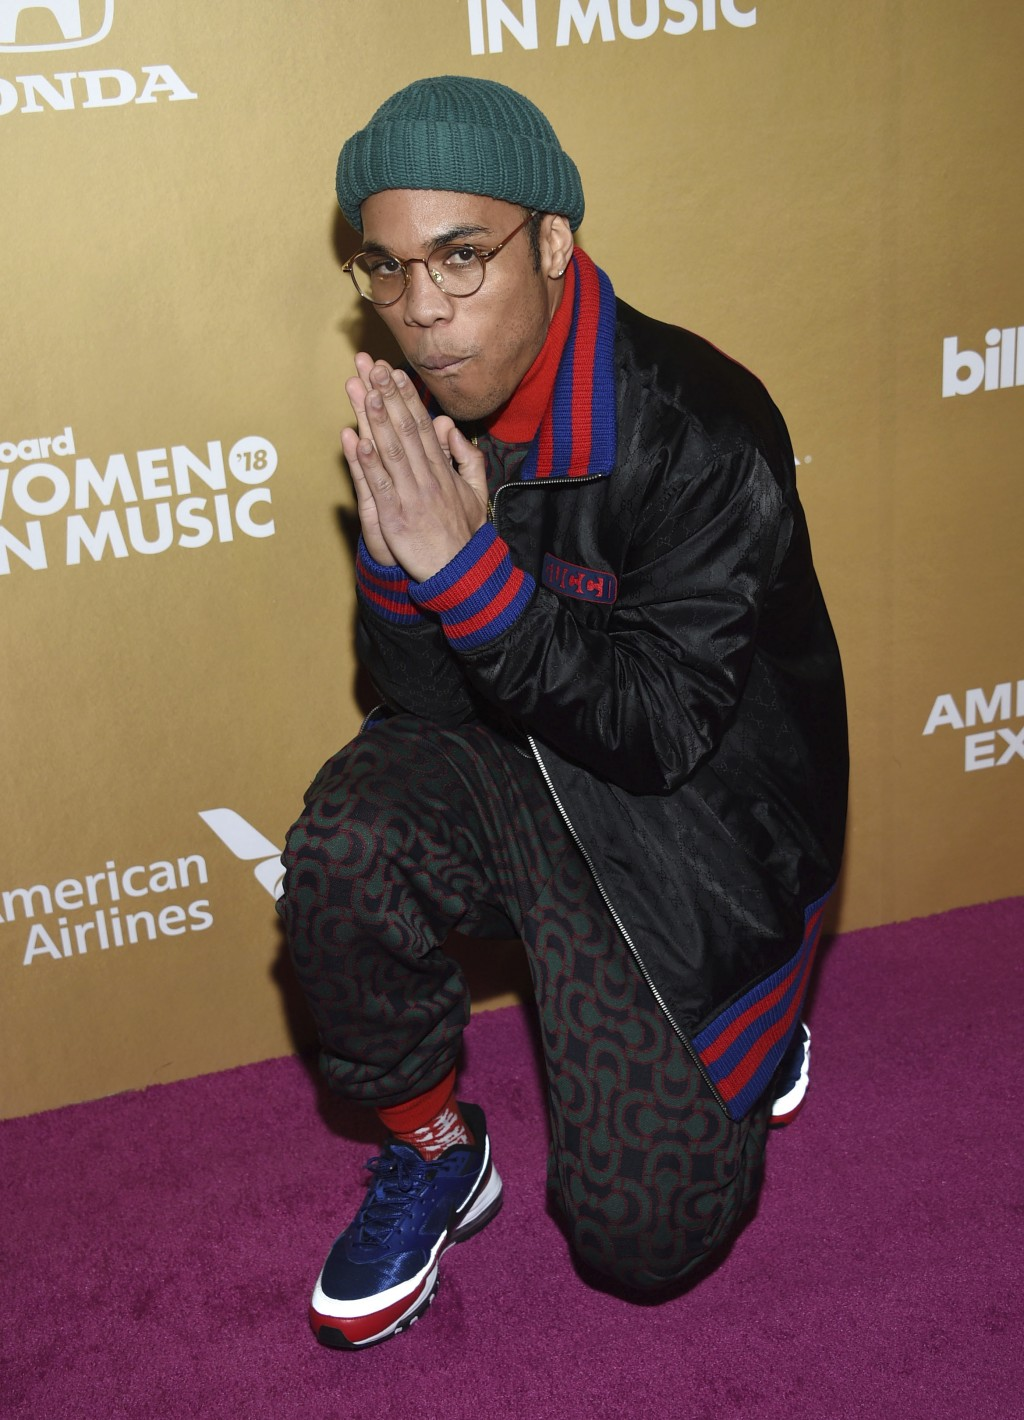 Anderson .Paak attends the 13th annual Billboard Women in Music event at Pier 36 on Thursday, Dec. 6, 2018, in New York. (Photo by Evan Agostini/Invis